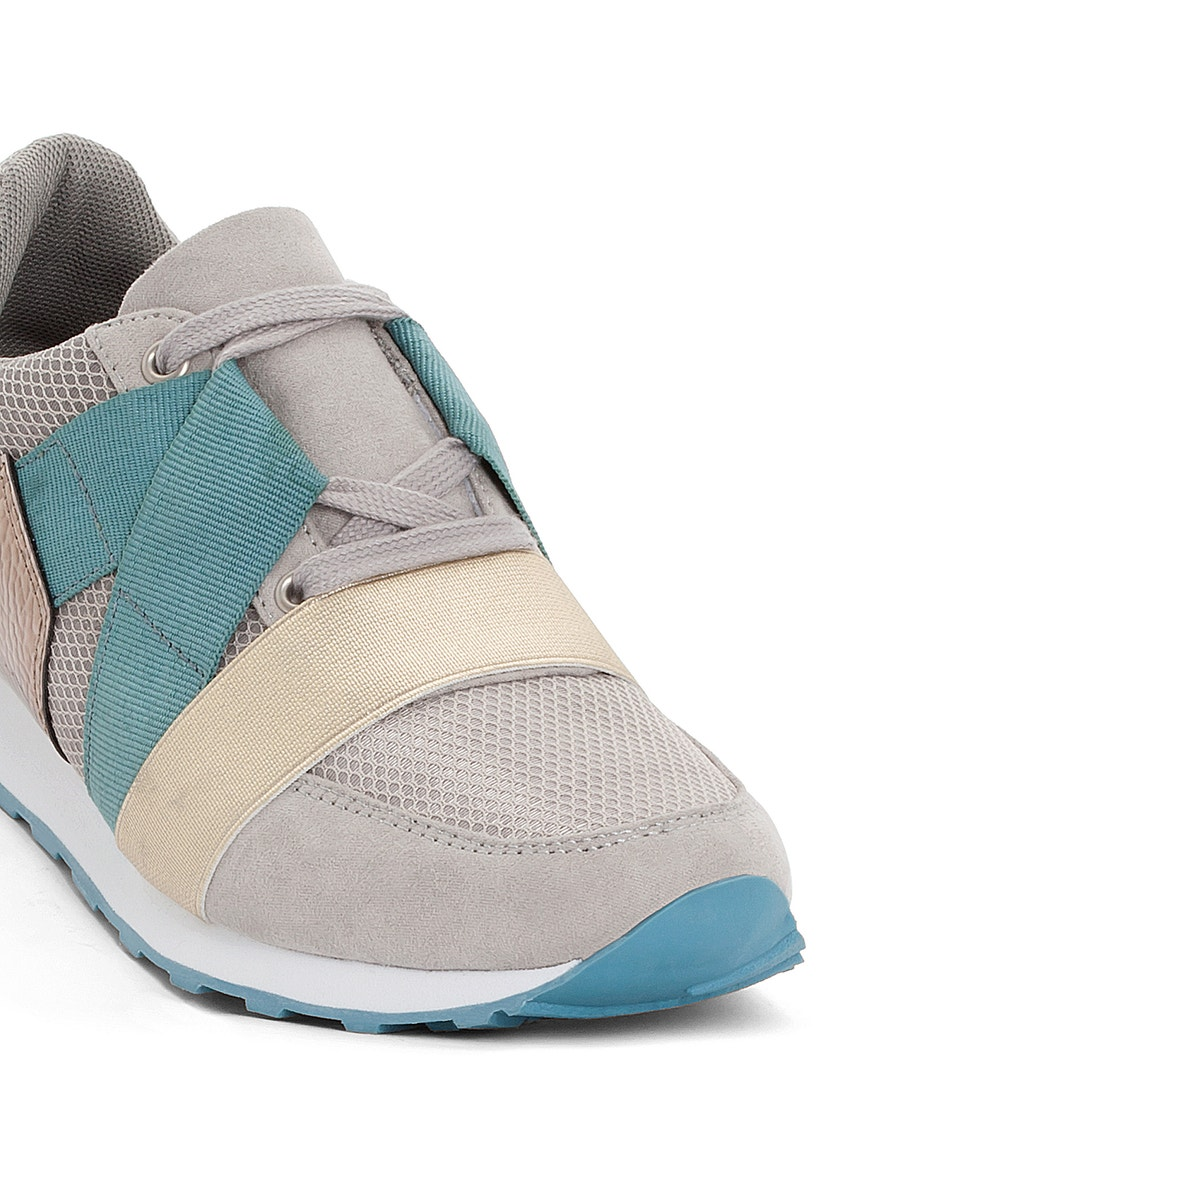 La Redoute Trainers Collections Womens Ultra Light Trainers Redoute With Elastic Detail 363928